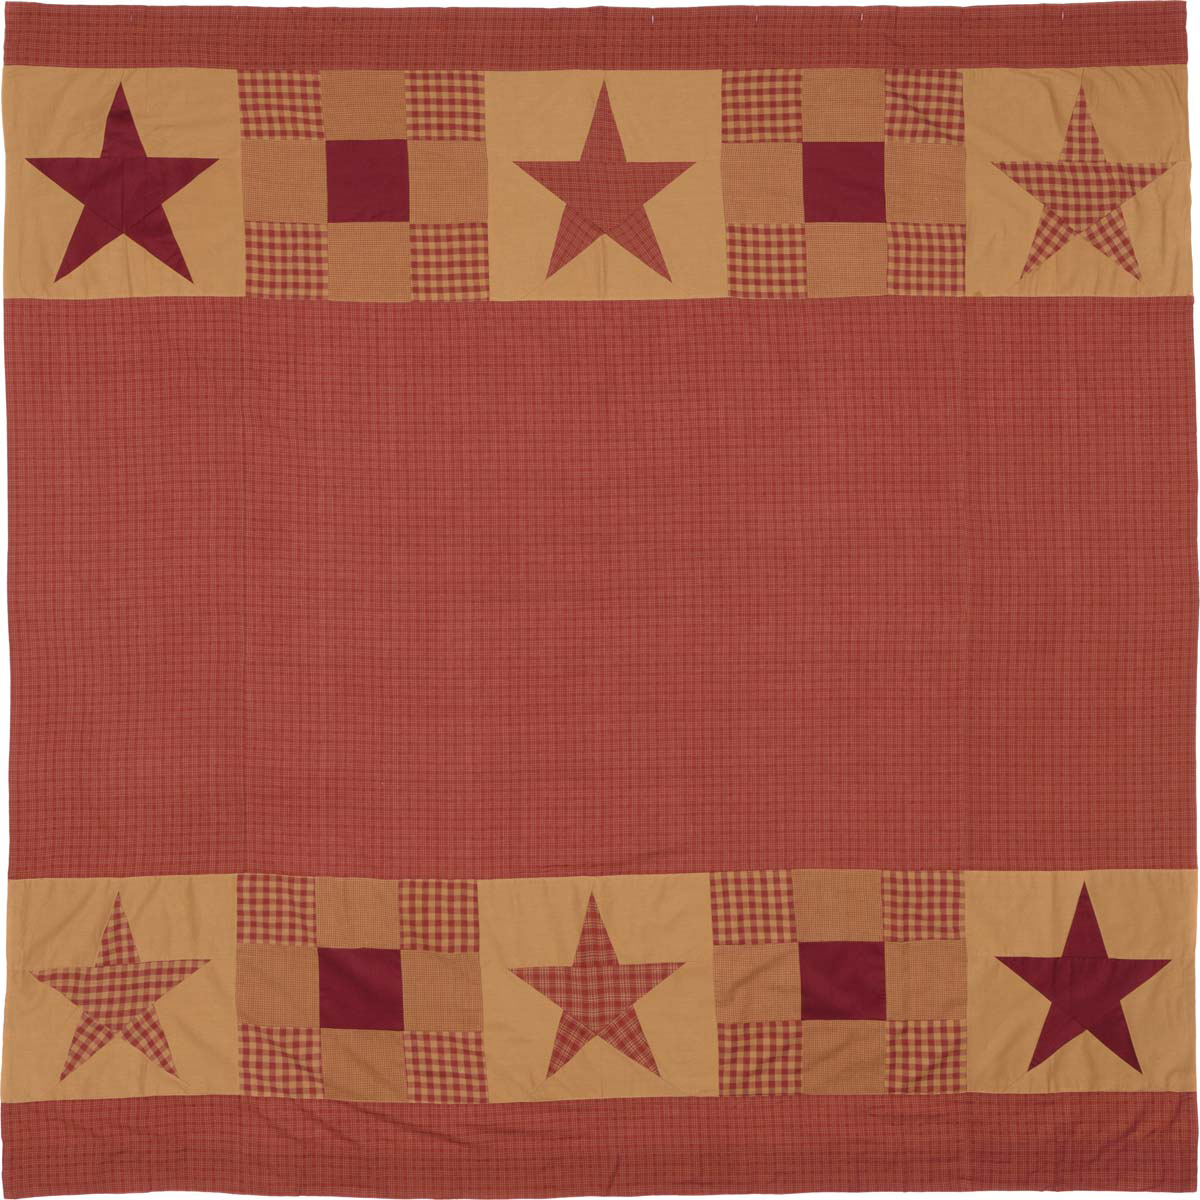 Ninepatch Star Shower Curtain - Patchwork Borders - Vhc Brands